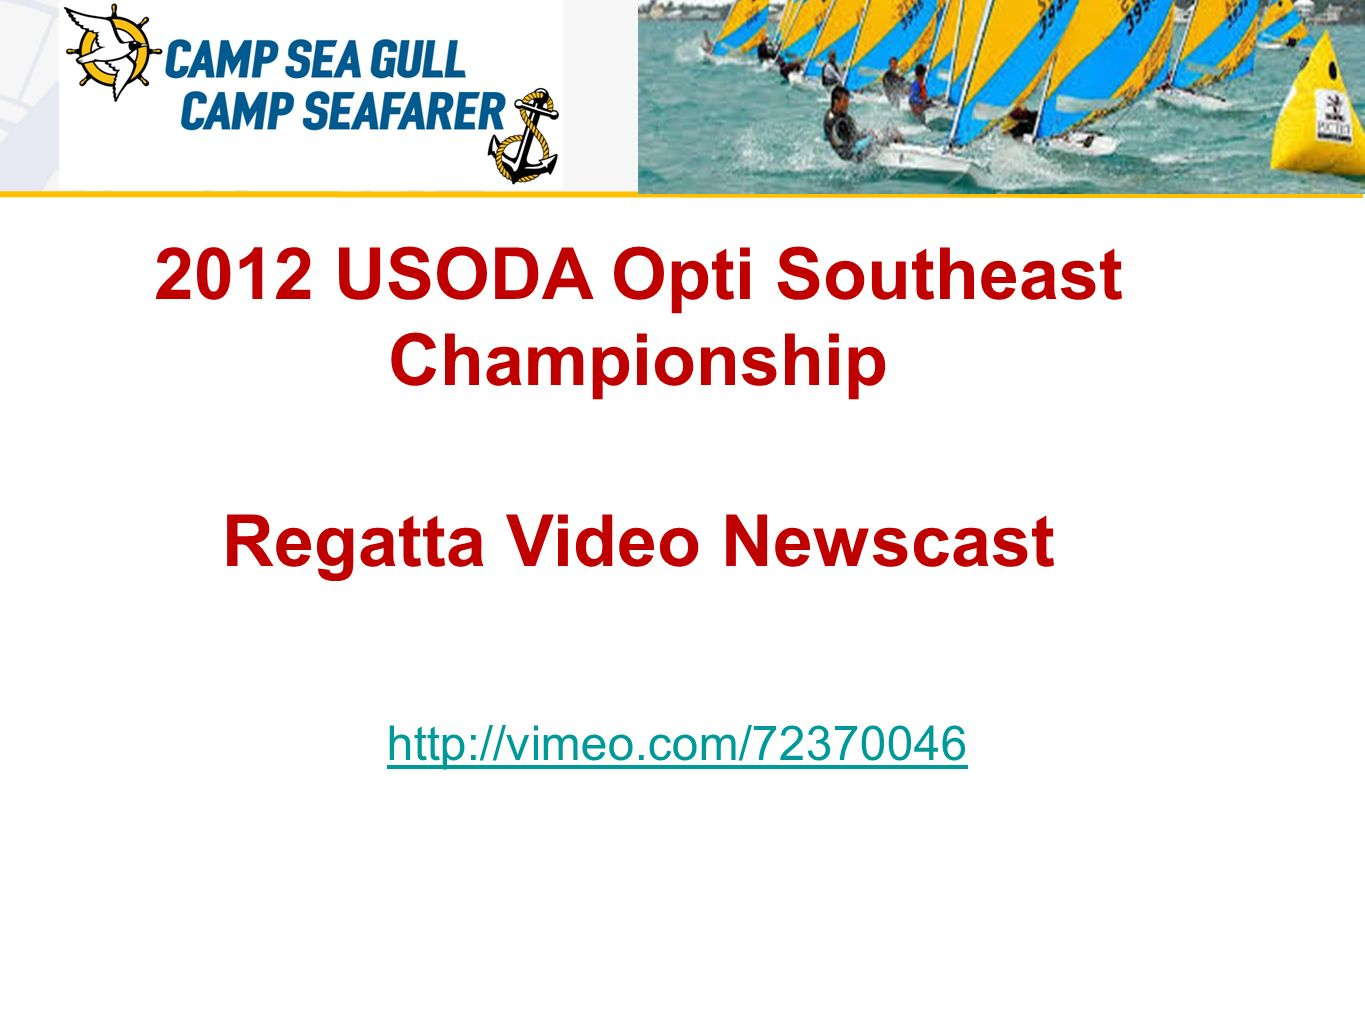 2012 USODA Opti Southeast Championship Regatta Video Newscast